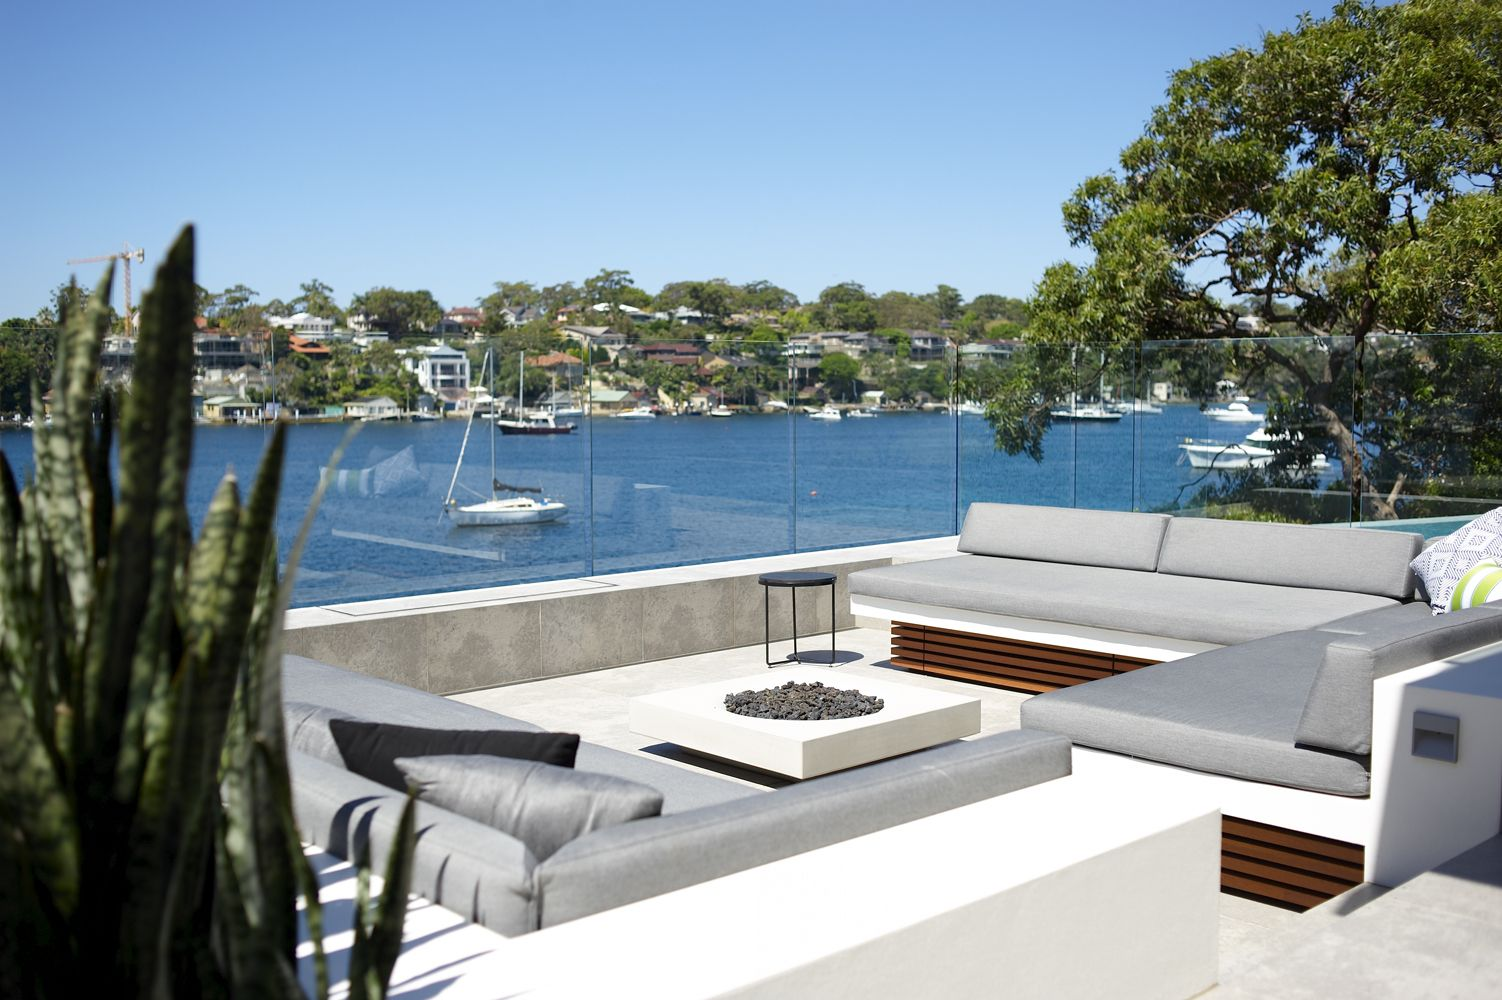 Waterfront entertainment area | Outdoor spaces, Indoor ... on Waterfront Backyard Ideas id=92409